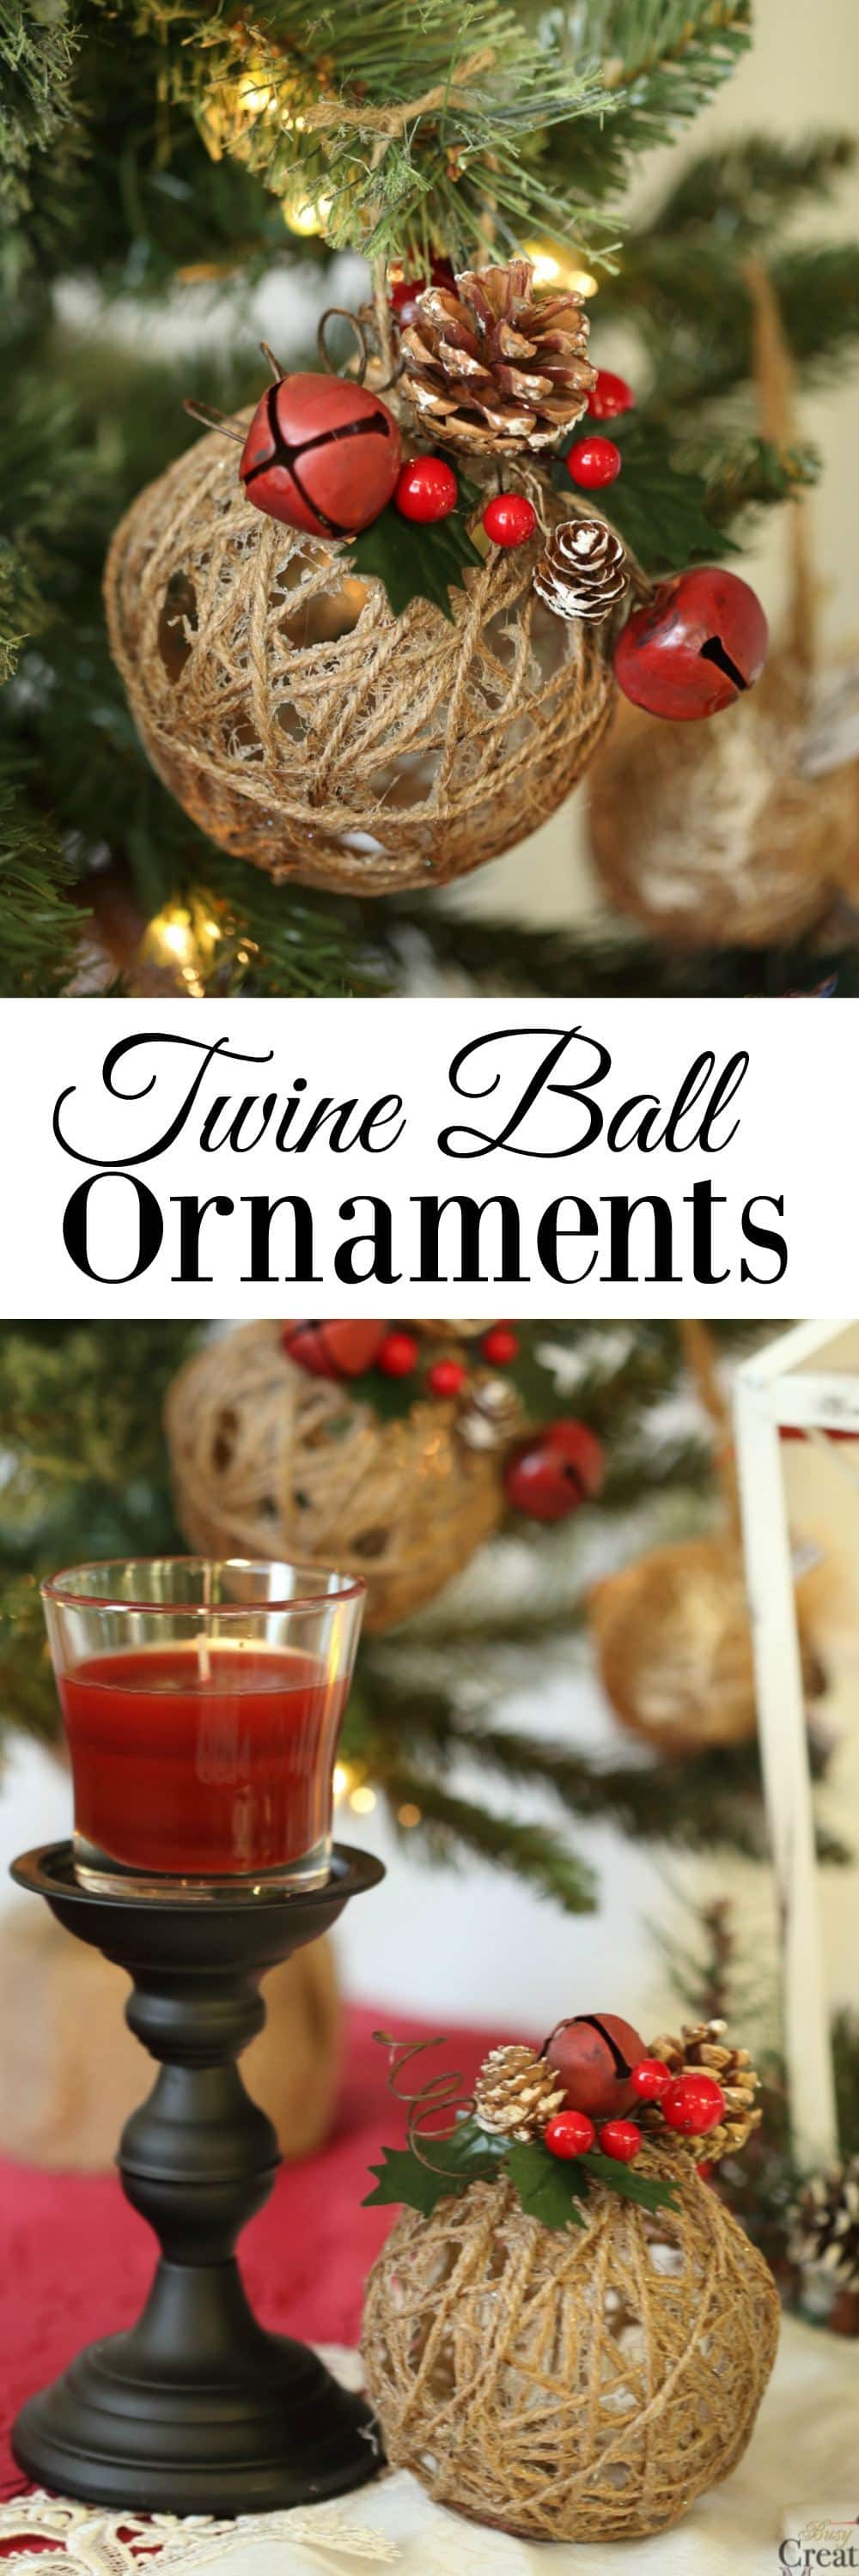 DIY Twine Ball Christmas Ornaments